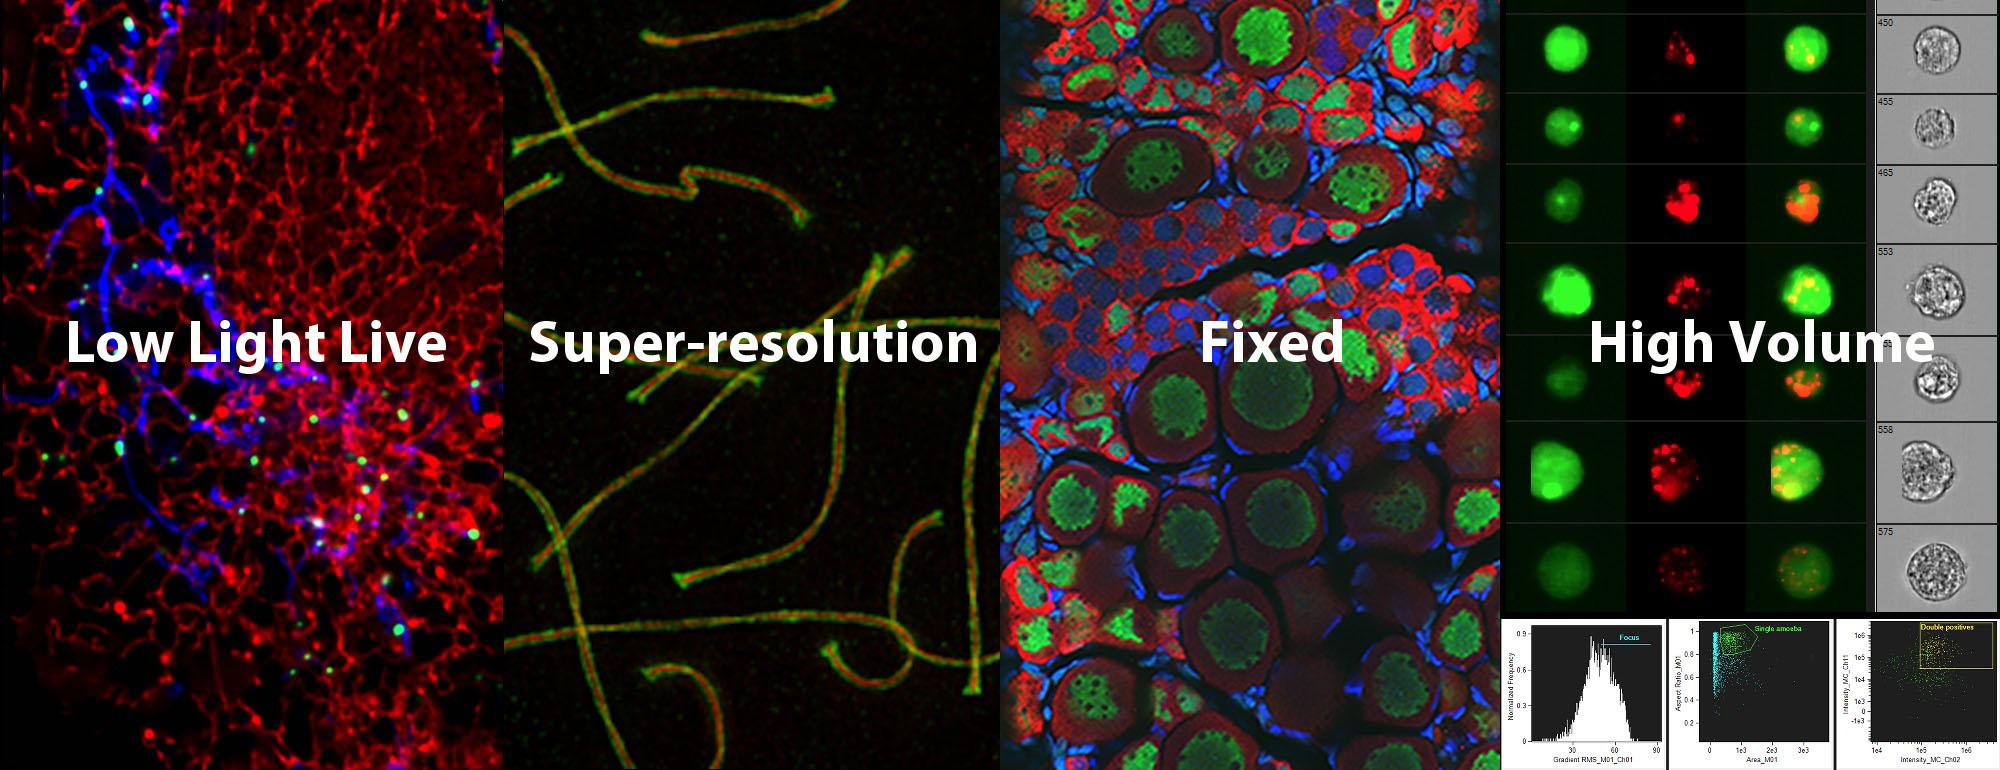 microscopy images with text